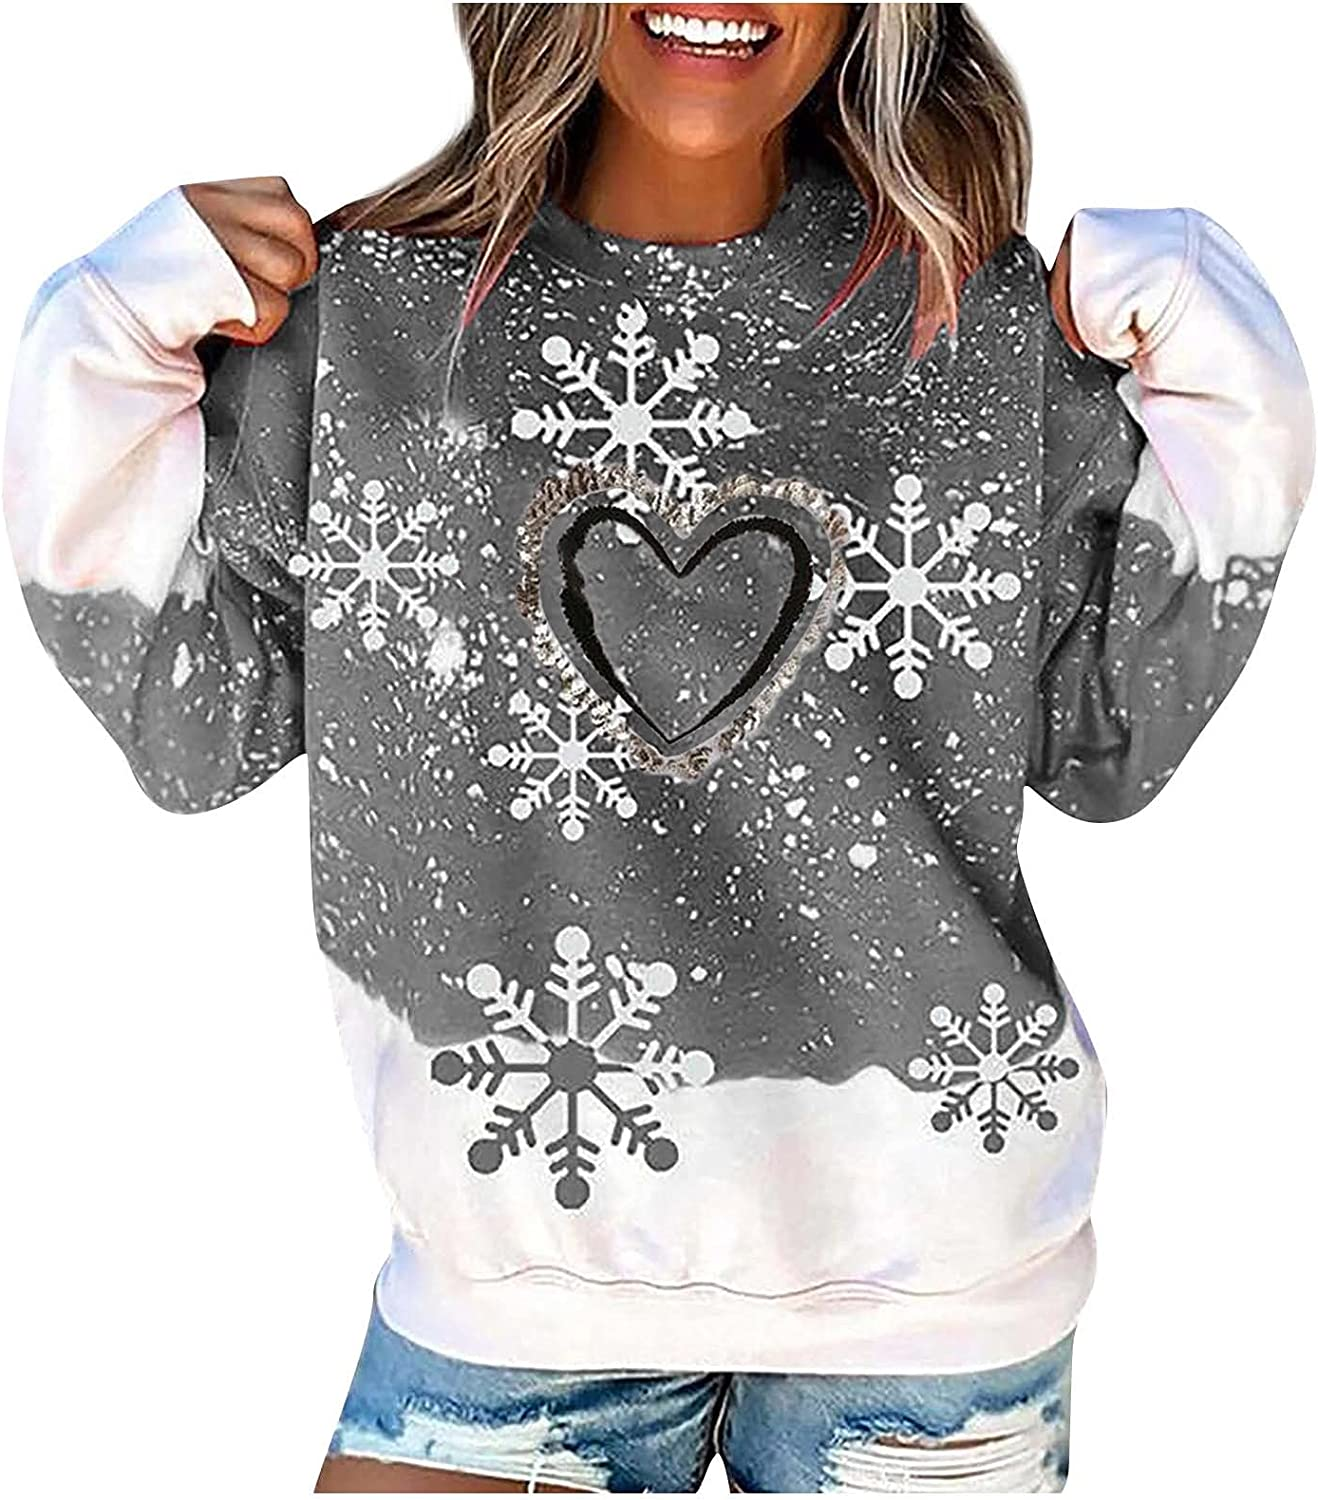 Xiangdanful Lady Christmas Print Contrasting Stitching O Low price N Reservation Color